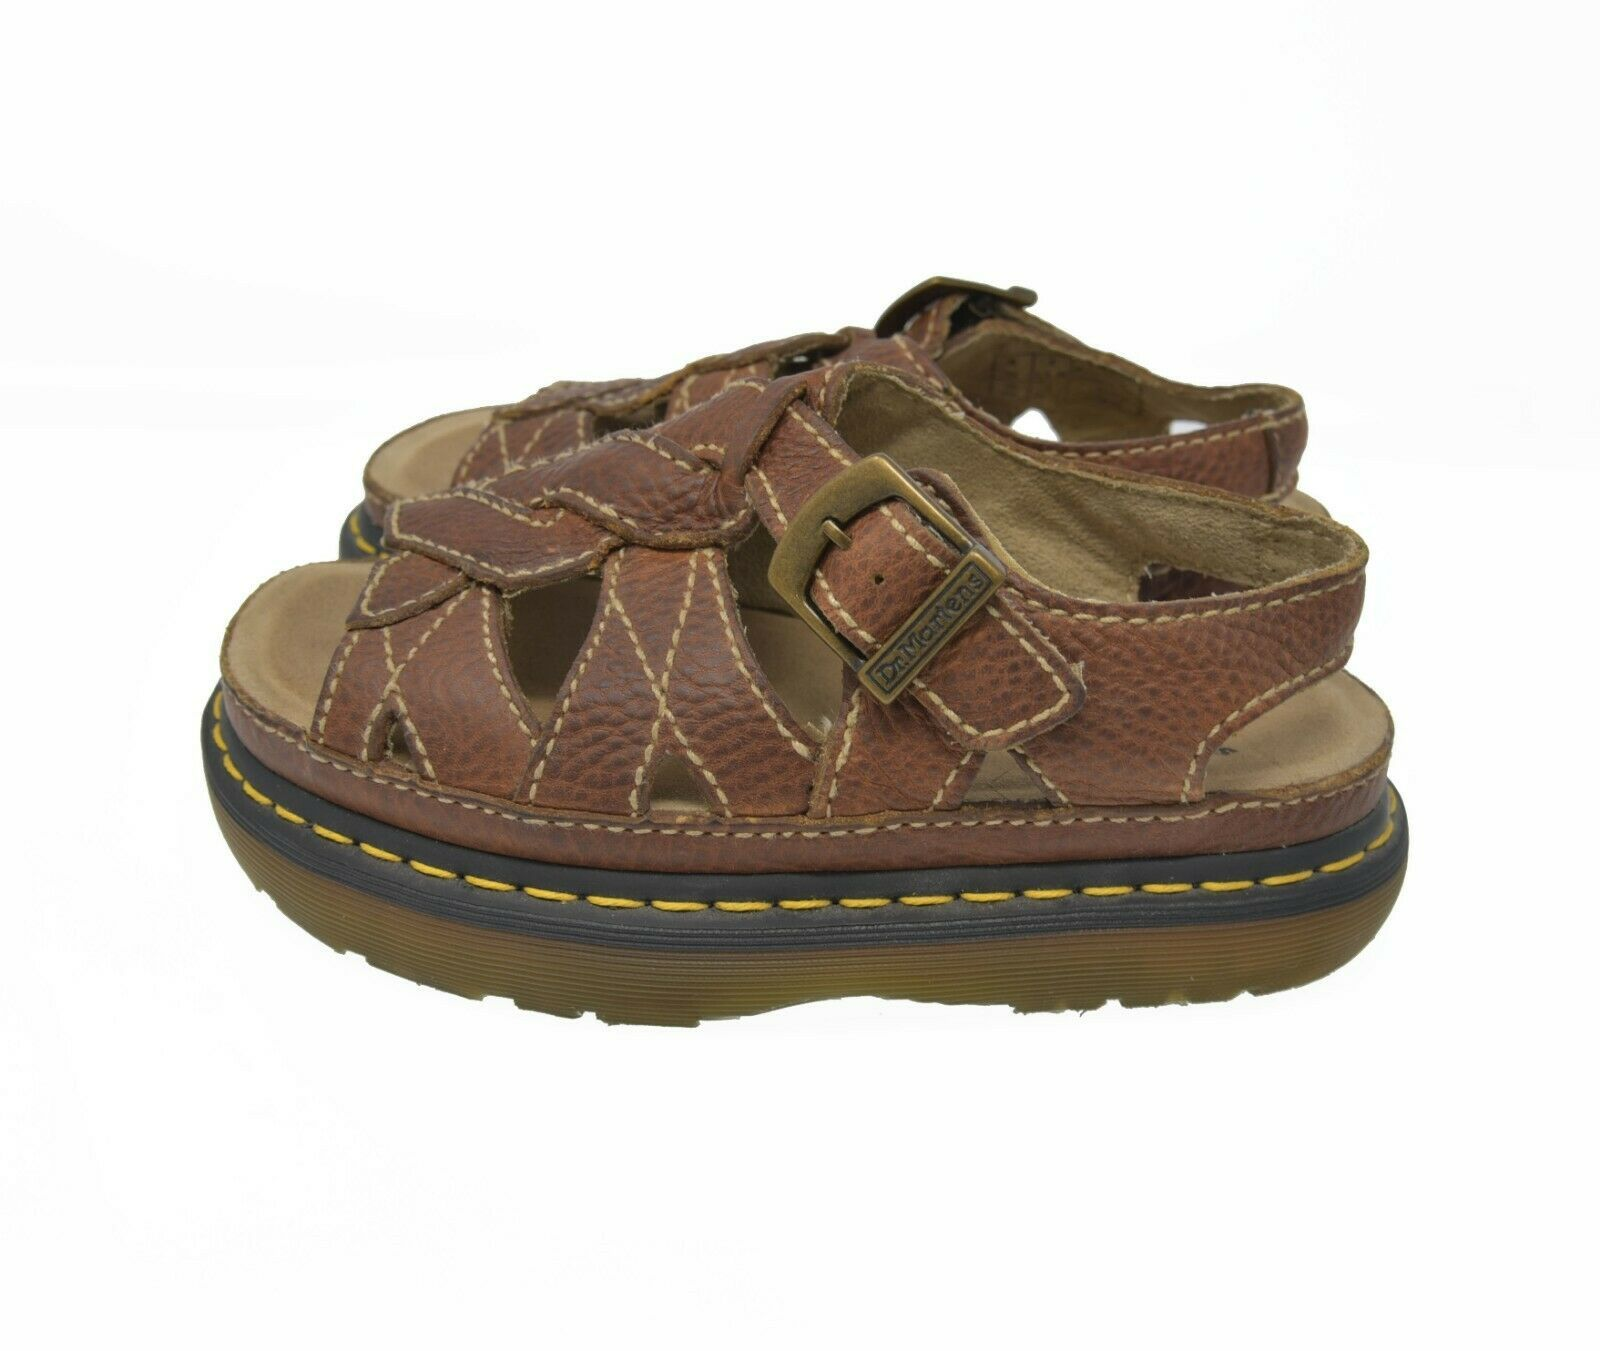 Doc Dr. Martens Women's Sz 7 EU 38 Brown Pebbled Leather Buckle Sandals AW004